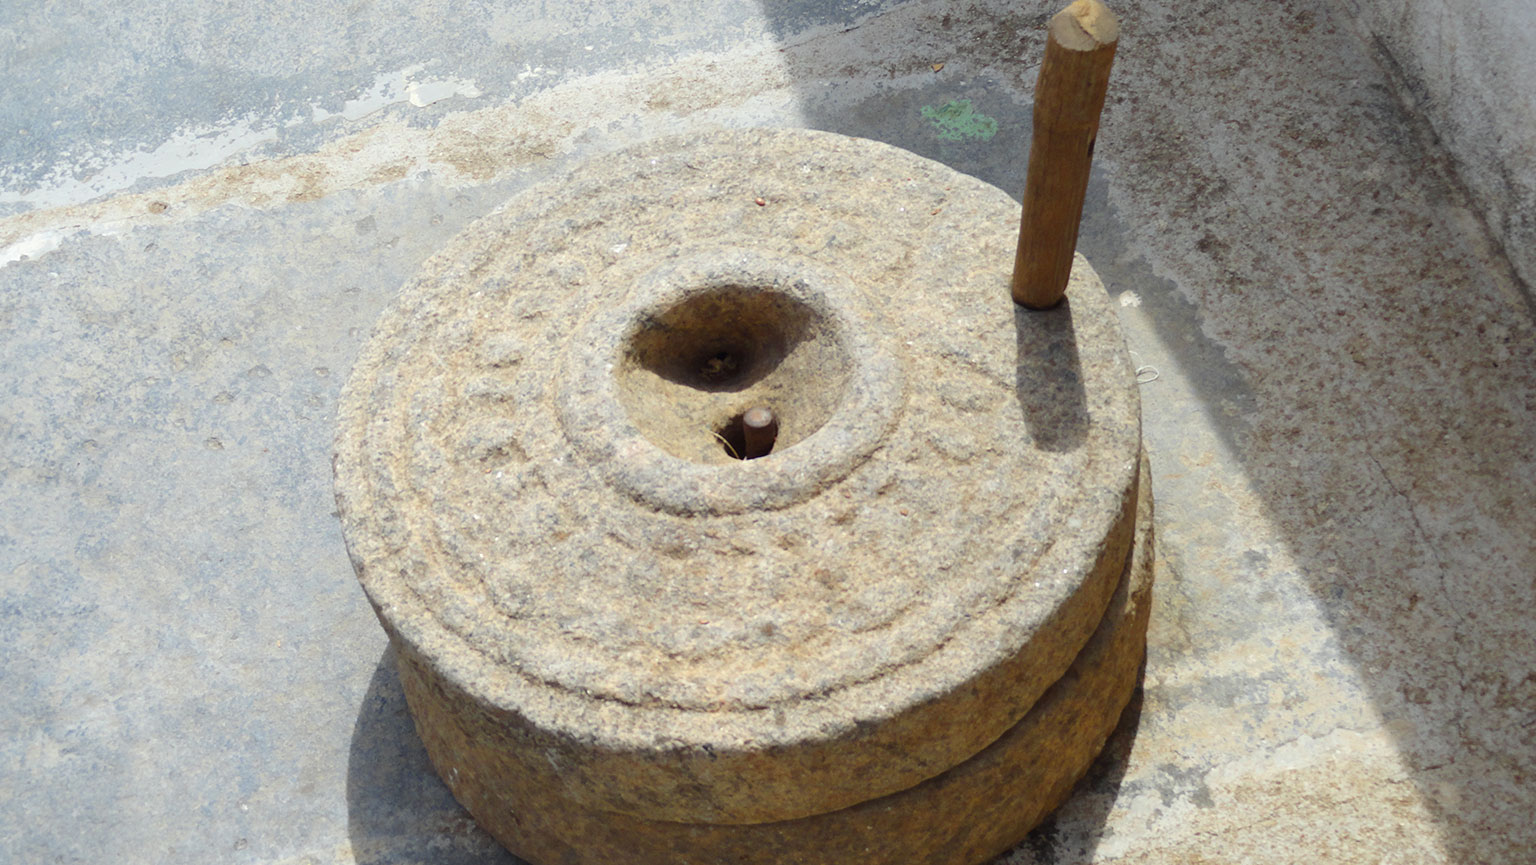 Milling Grain with Water Power